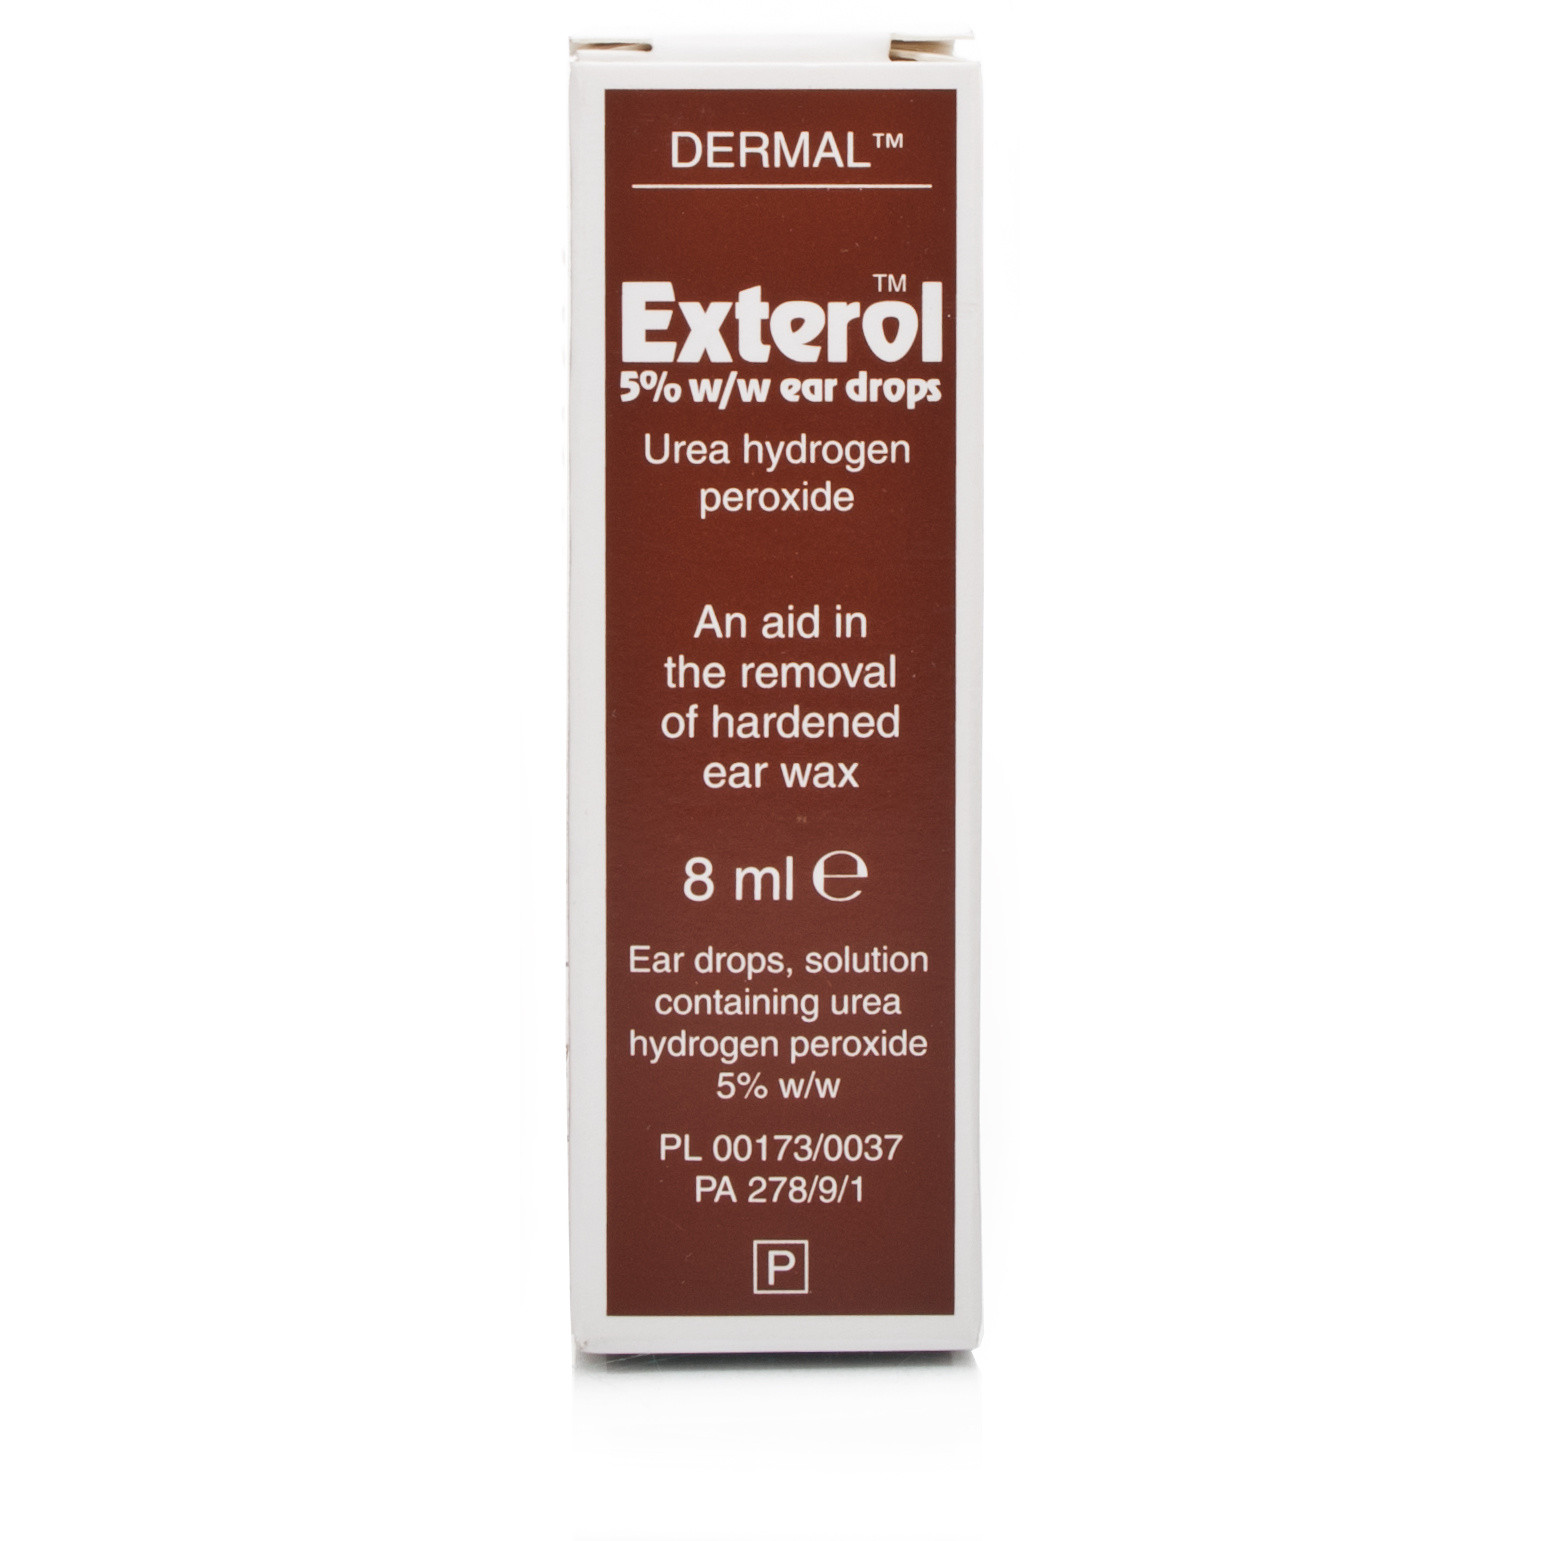 Exterol Ear Drops (Contain 5 Urea Hydrogen Peroxide)